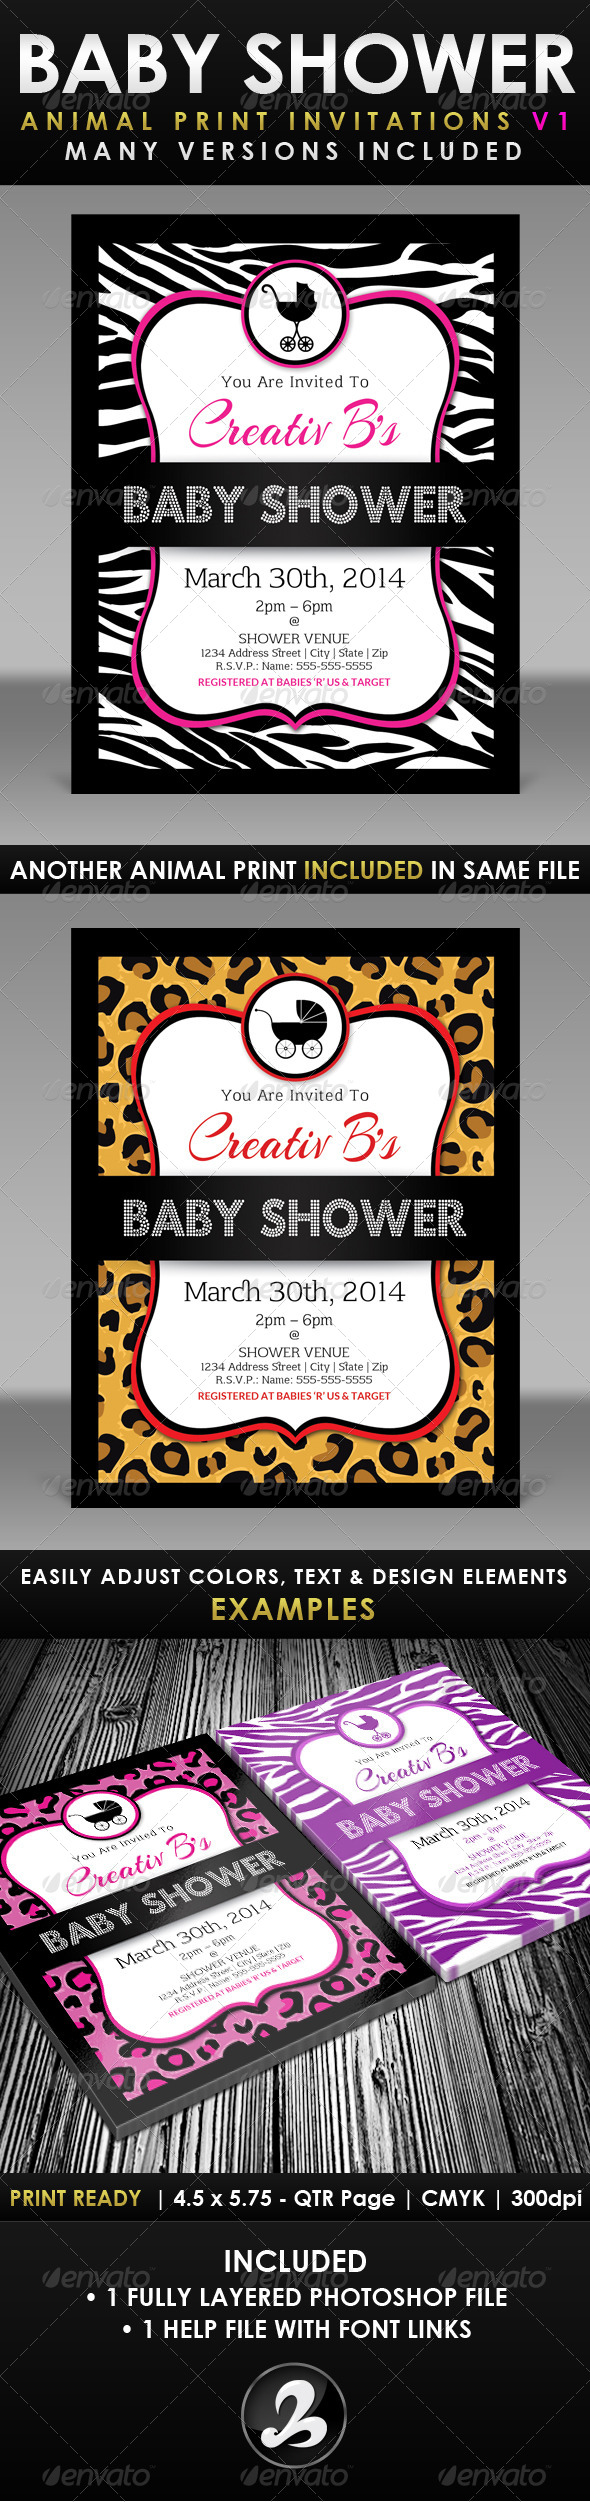 Baby Shower Invitation Template - Animal Print v1 - Invitations Cards & Invites